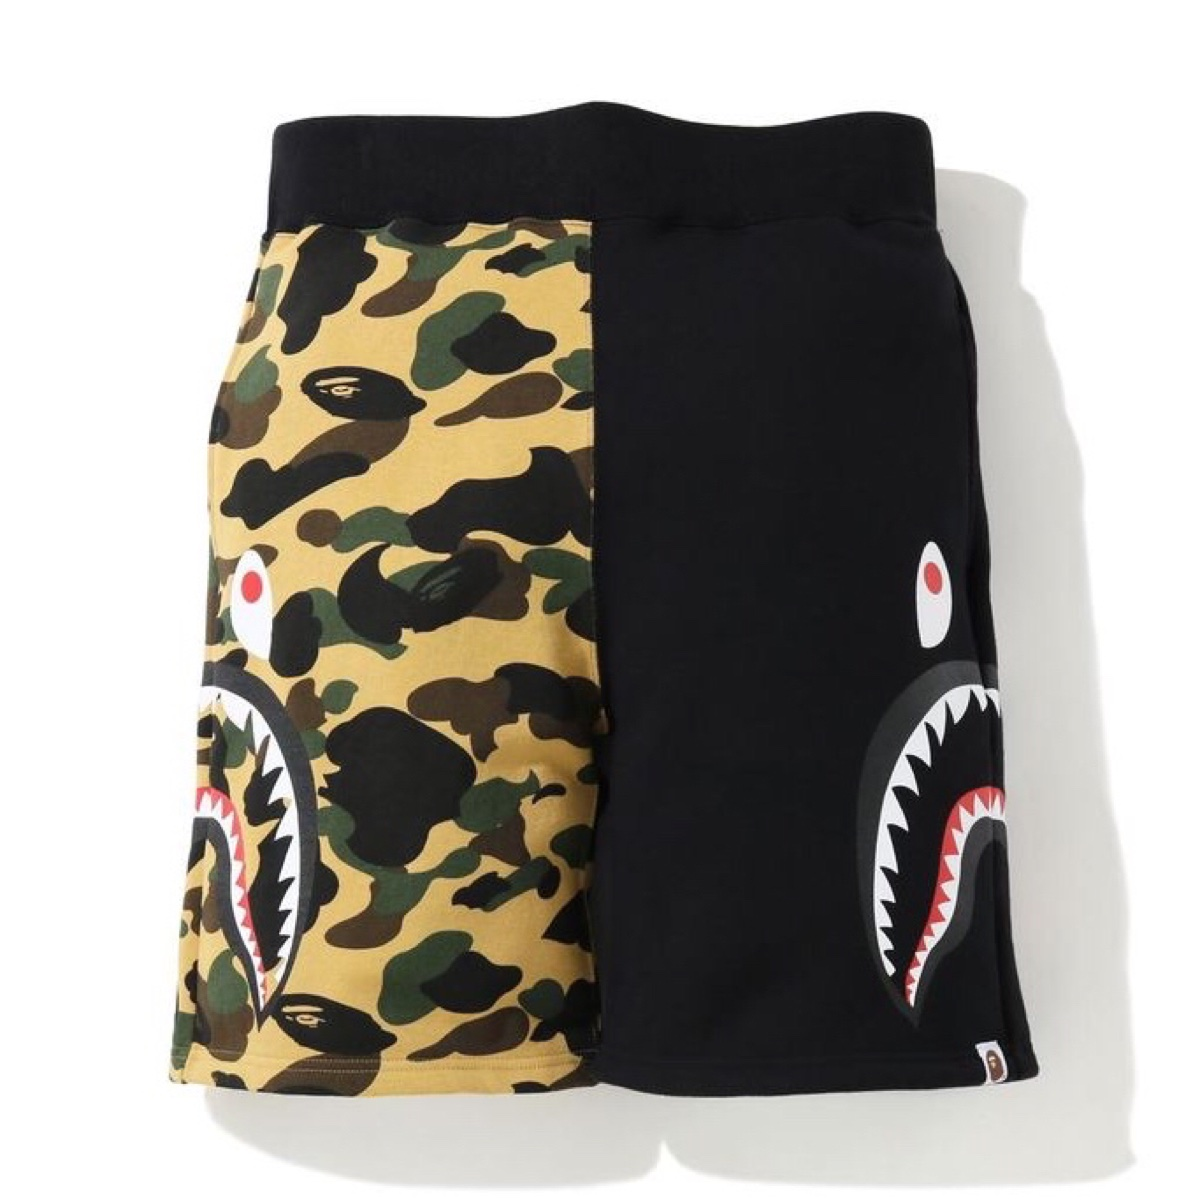 BAPE 1ST CAMO SIDE SHARK SWEAT SHORTS BLACK